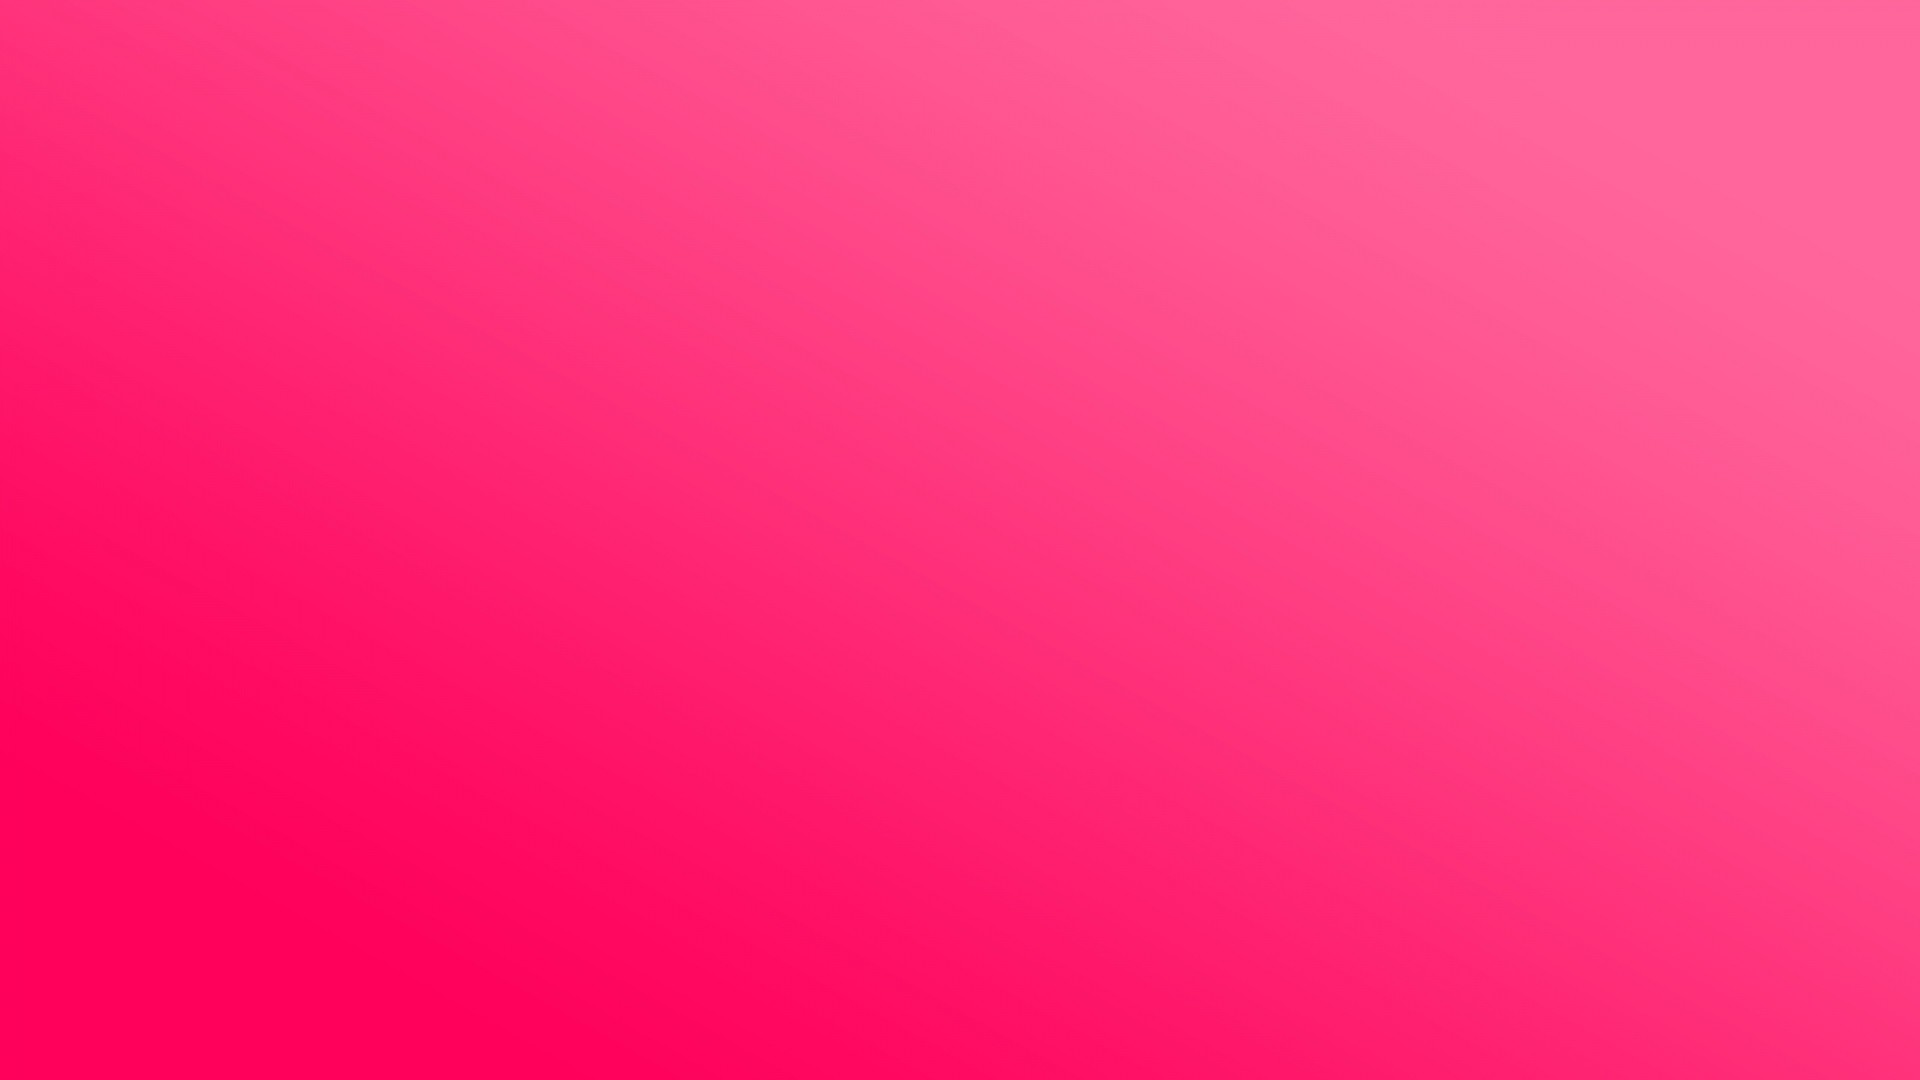 Get the latest pink, solid, color news, pictures and videos and learn all  about pink, solid, color from wallpapers4u.org, your wallpaper news source.